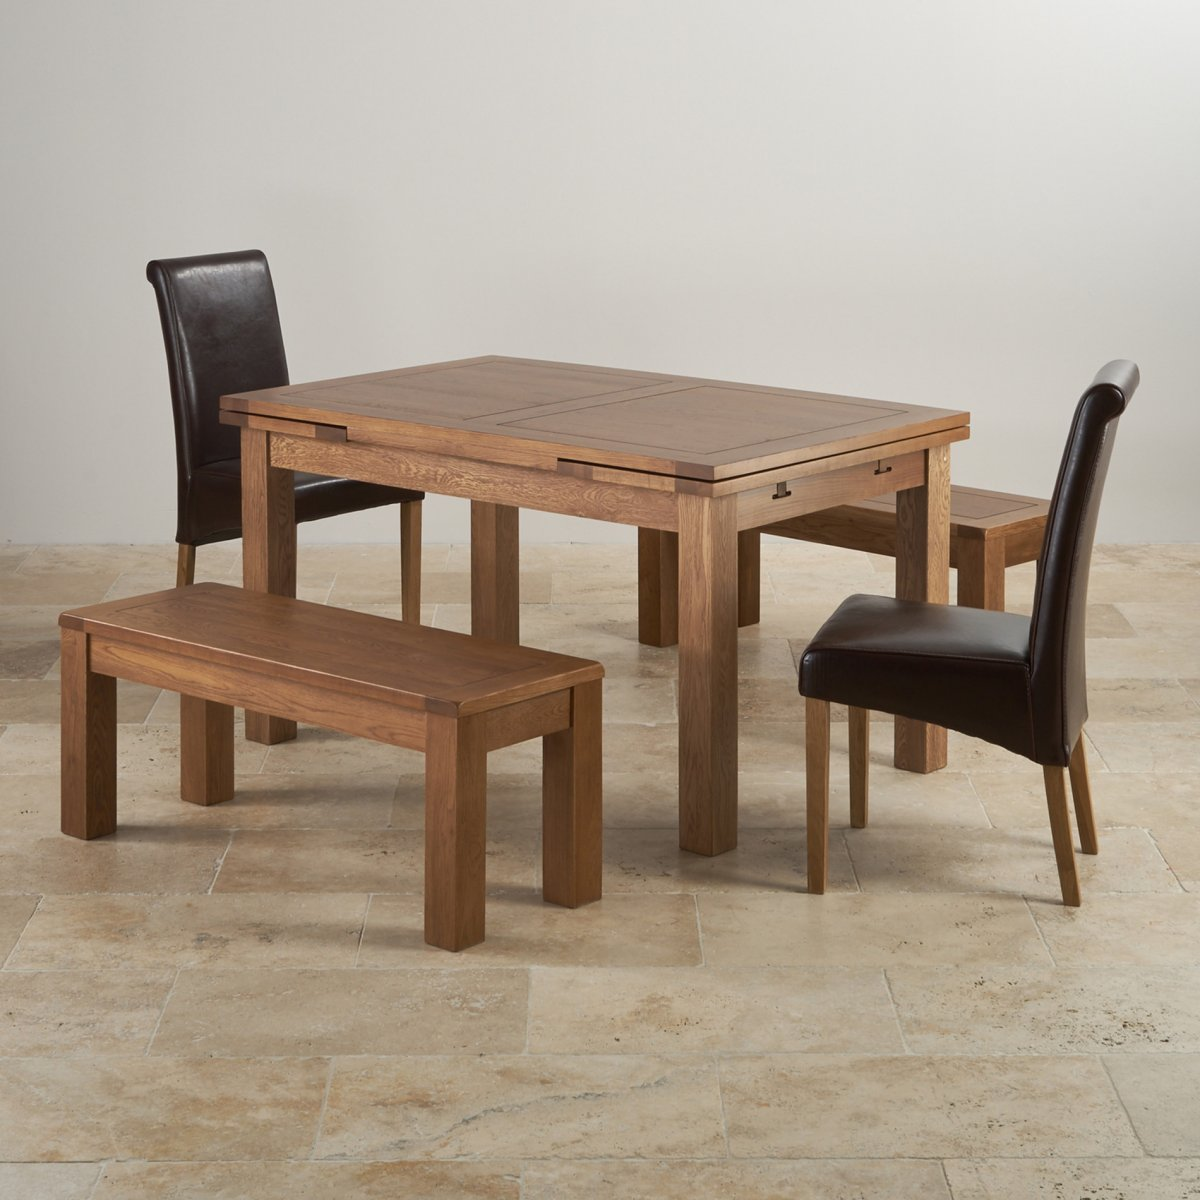 Set Of 2 Dining Room Furniture Brown Leather Dining: Rustic Oak Dining Set: Extending Table + 2 Benches And 2